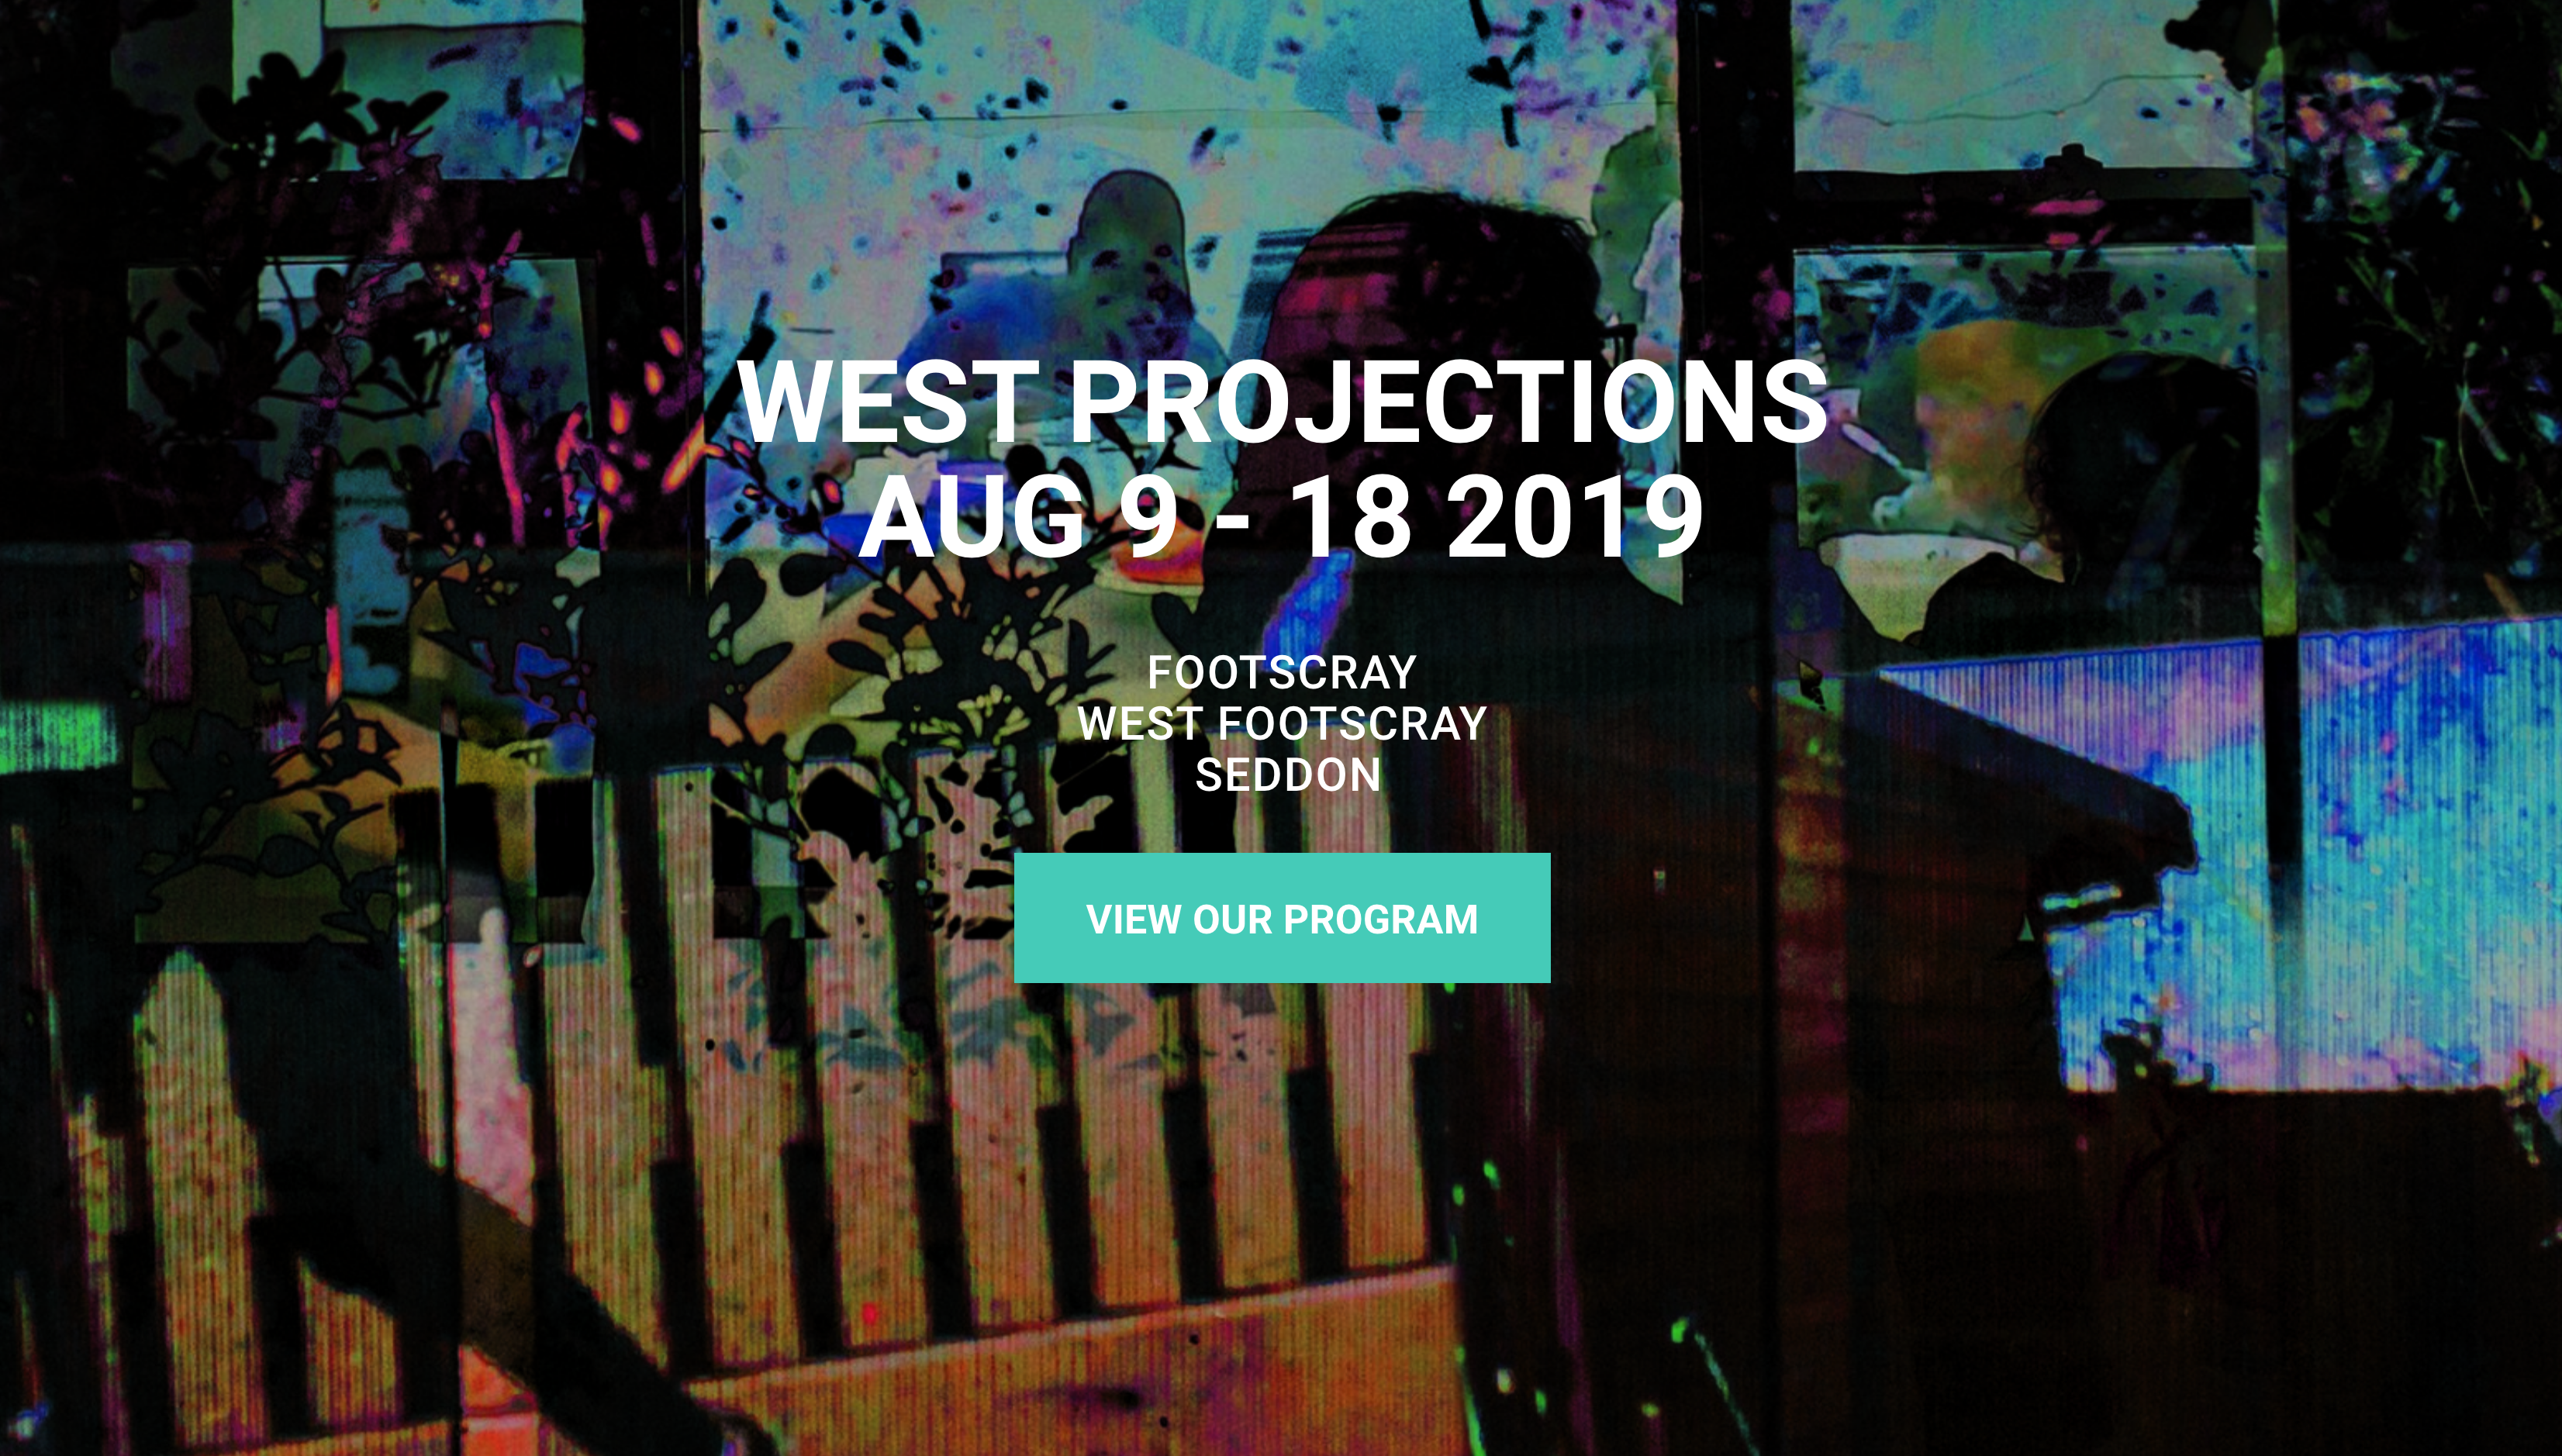 West Projections Festival 2019